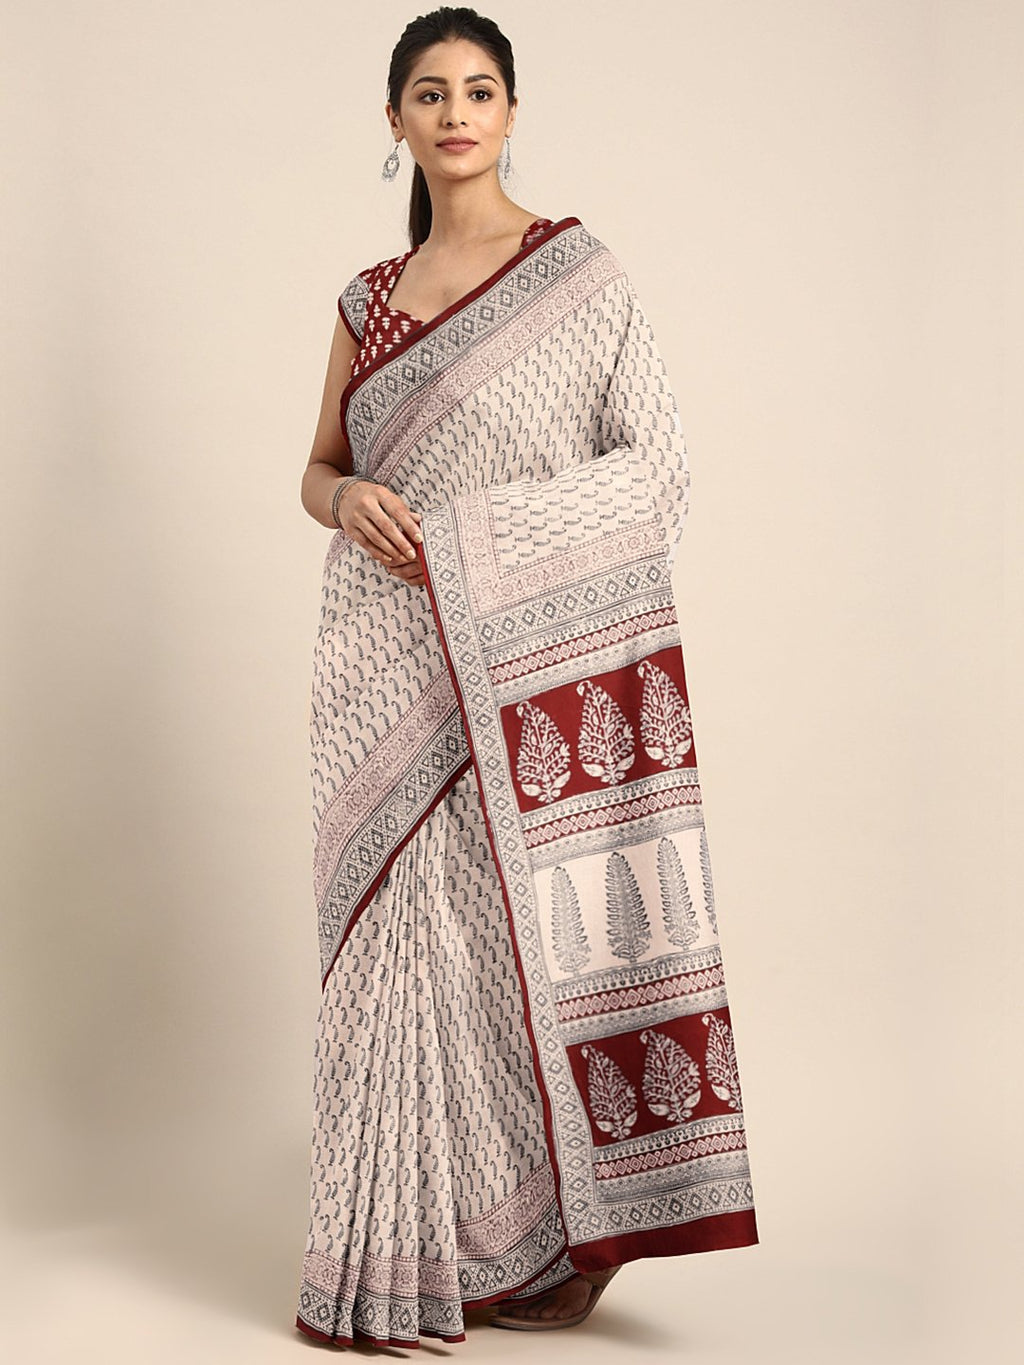 Off-White Black Handblock Print Saree-Saree-Kalakari India-MYBASA0022-Bagh, Cotton, Geographical Indication, Hand Blocks, Hand Crafted, Heritage Prints, Natural Dyes, Sarees, Sustainable Fabrics-[Linen,Ethnic,wear,Fashionista,Handloom,Handicraft,Indigo,blockprint,block,print,Cotton,Chanderi,Blue, latest,classy,party,bollywood,trendy,summer,style,traditional,formal,elegant,unique,style,hand,block,print, dabu,booti,gift,present,glamorous,affordable,collectible,Sari,Saree,printed, holi, Diwali, bir